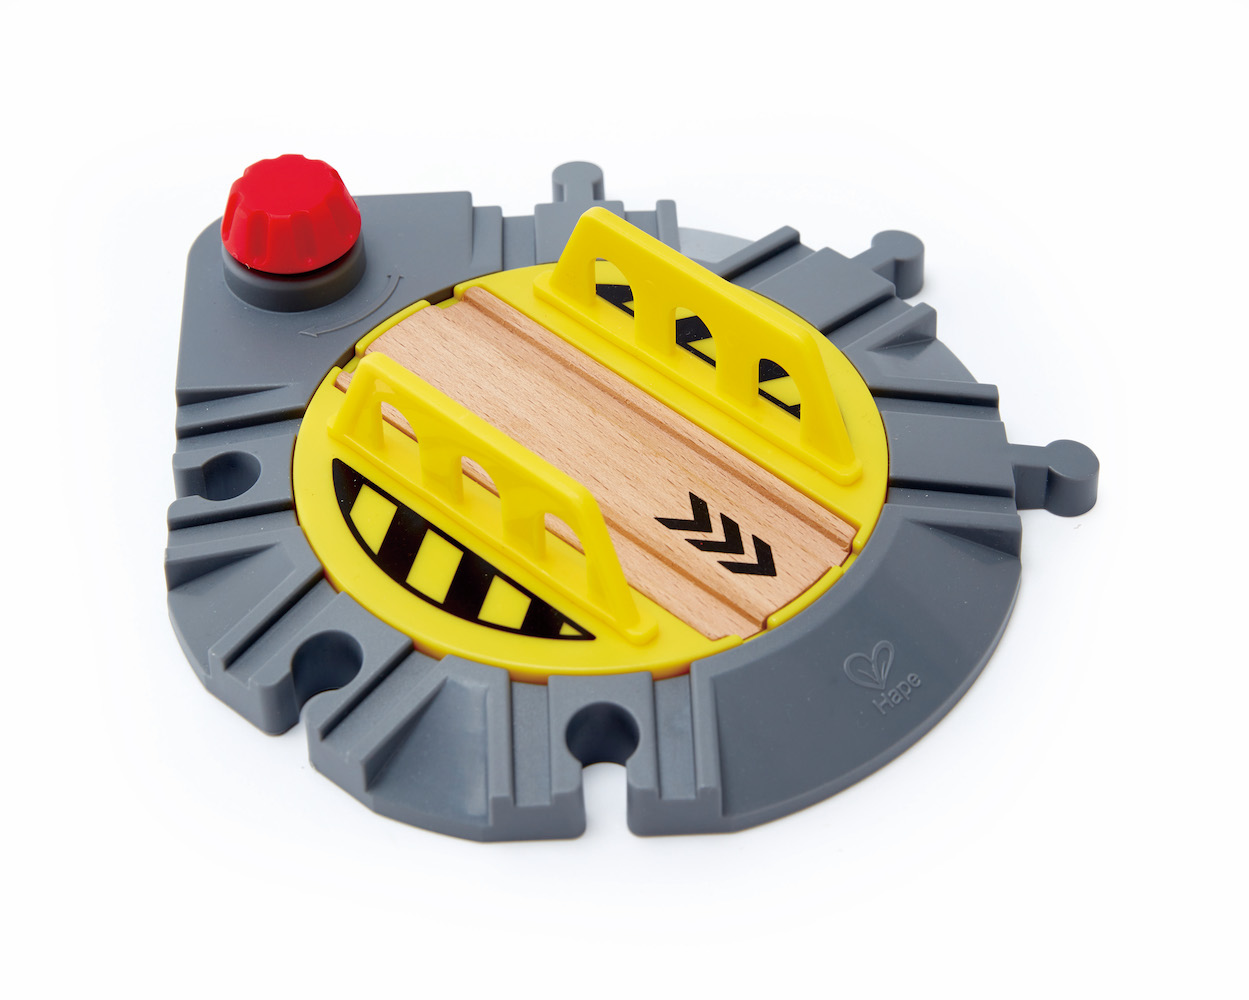 E3723 Adjustable Rail Turntable